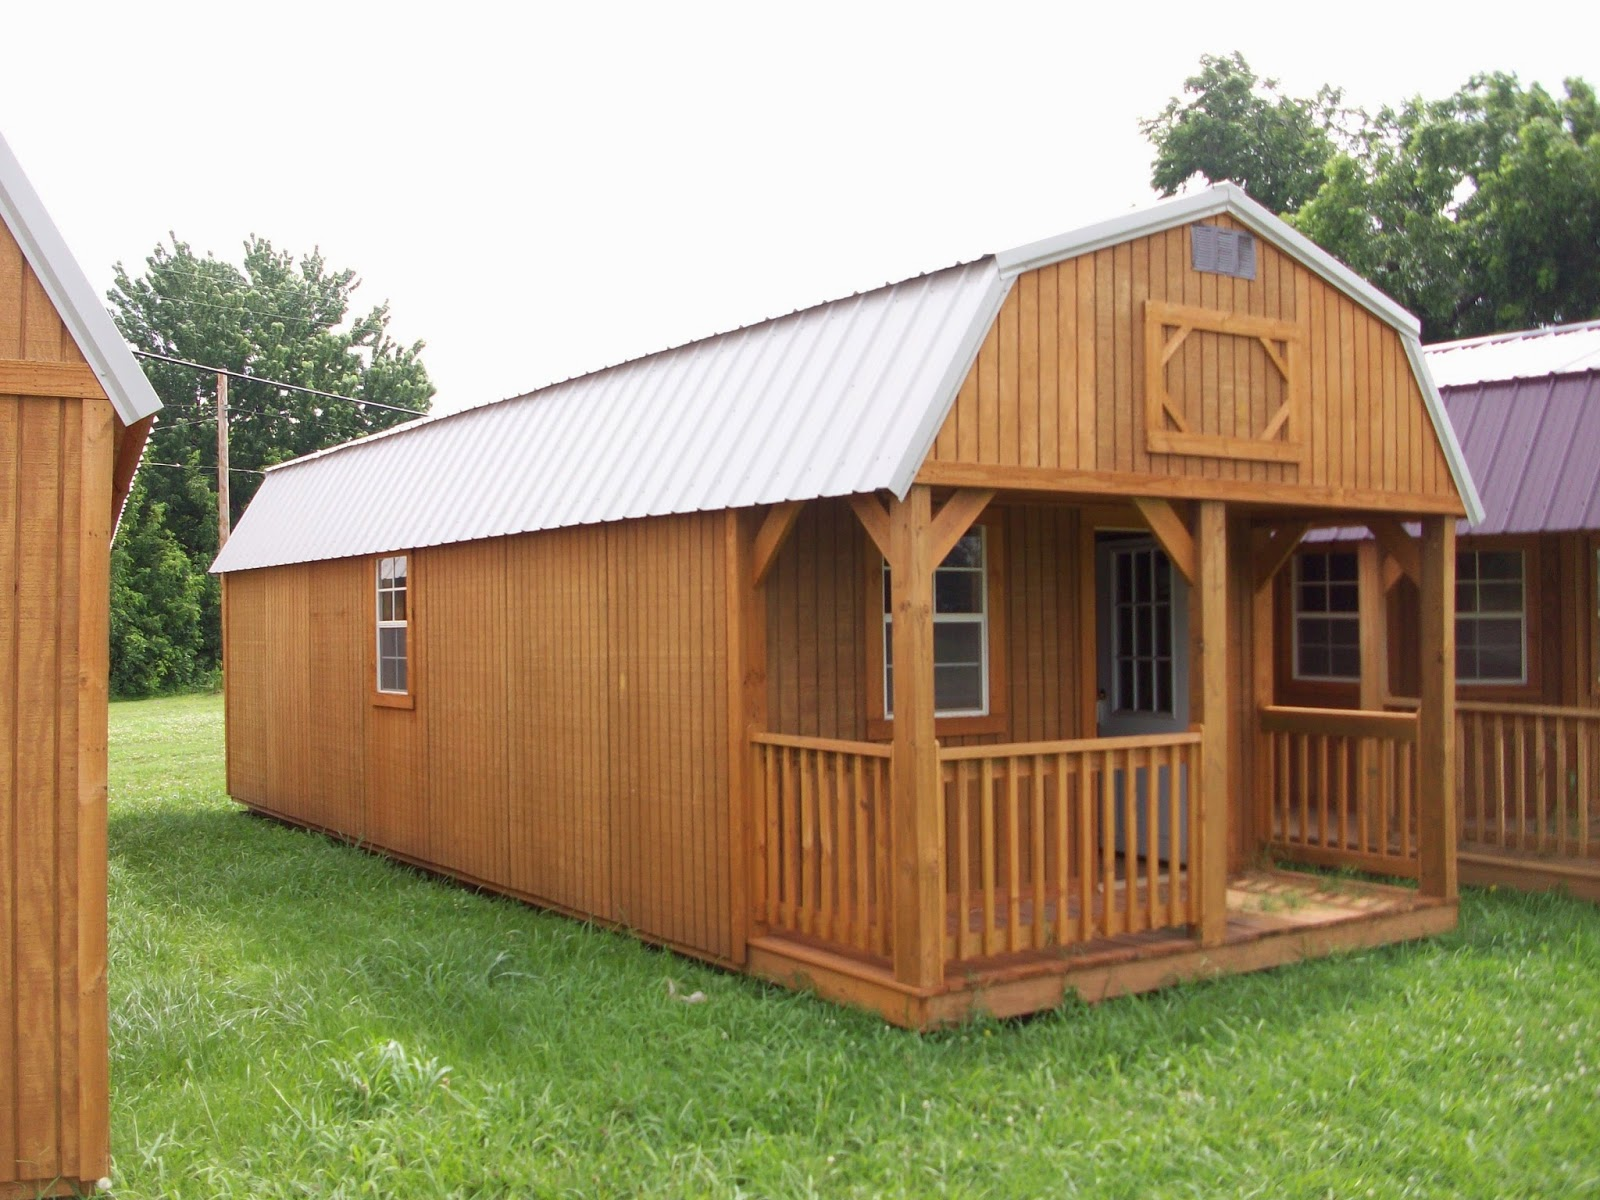 Tiny house homestead meet the shedroom for Shouse shed house